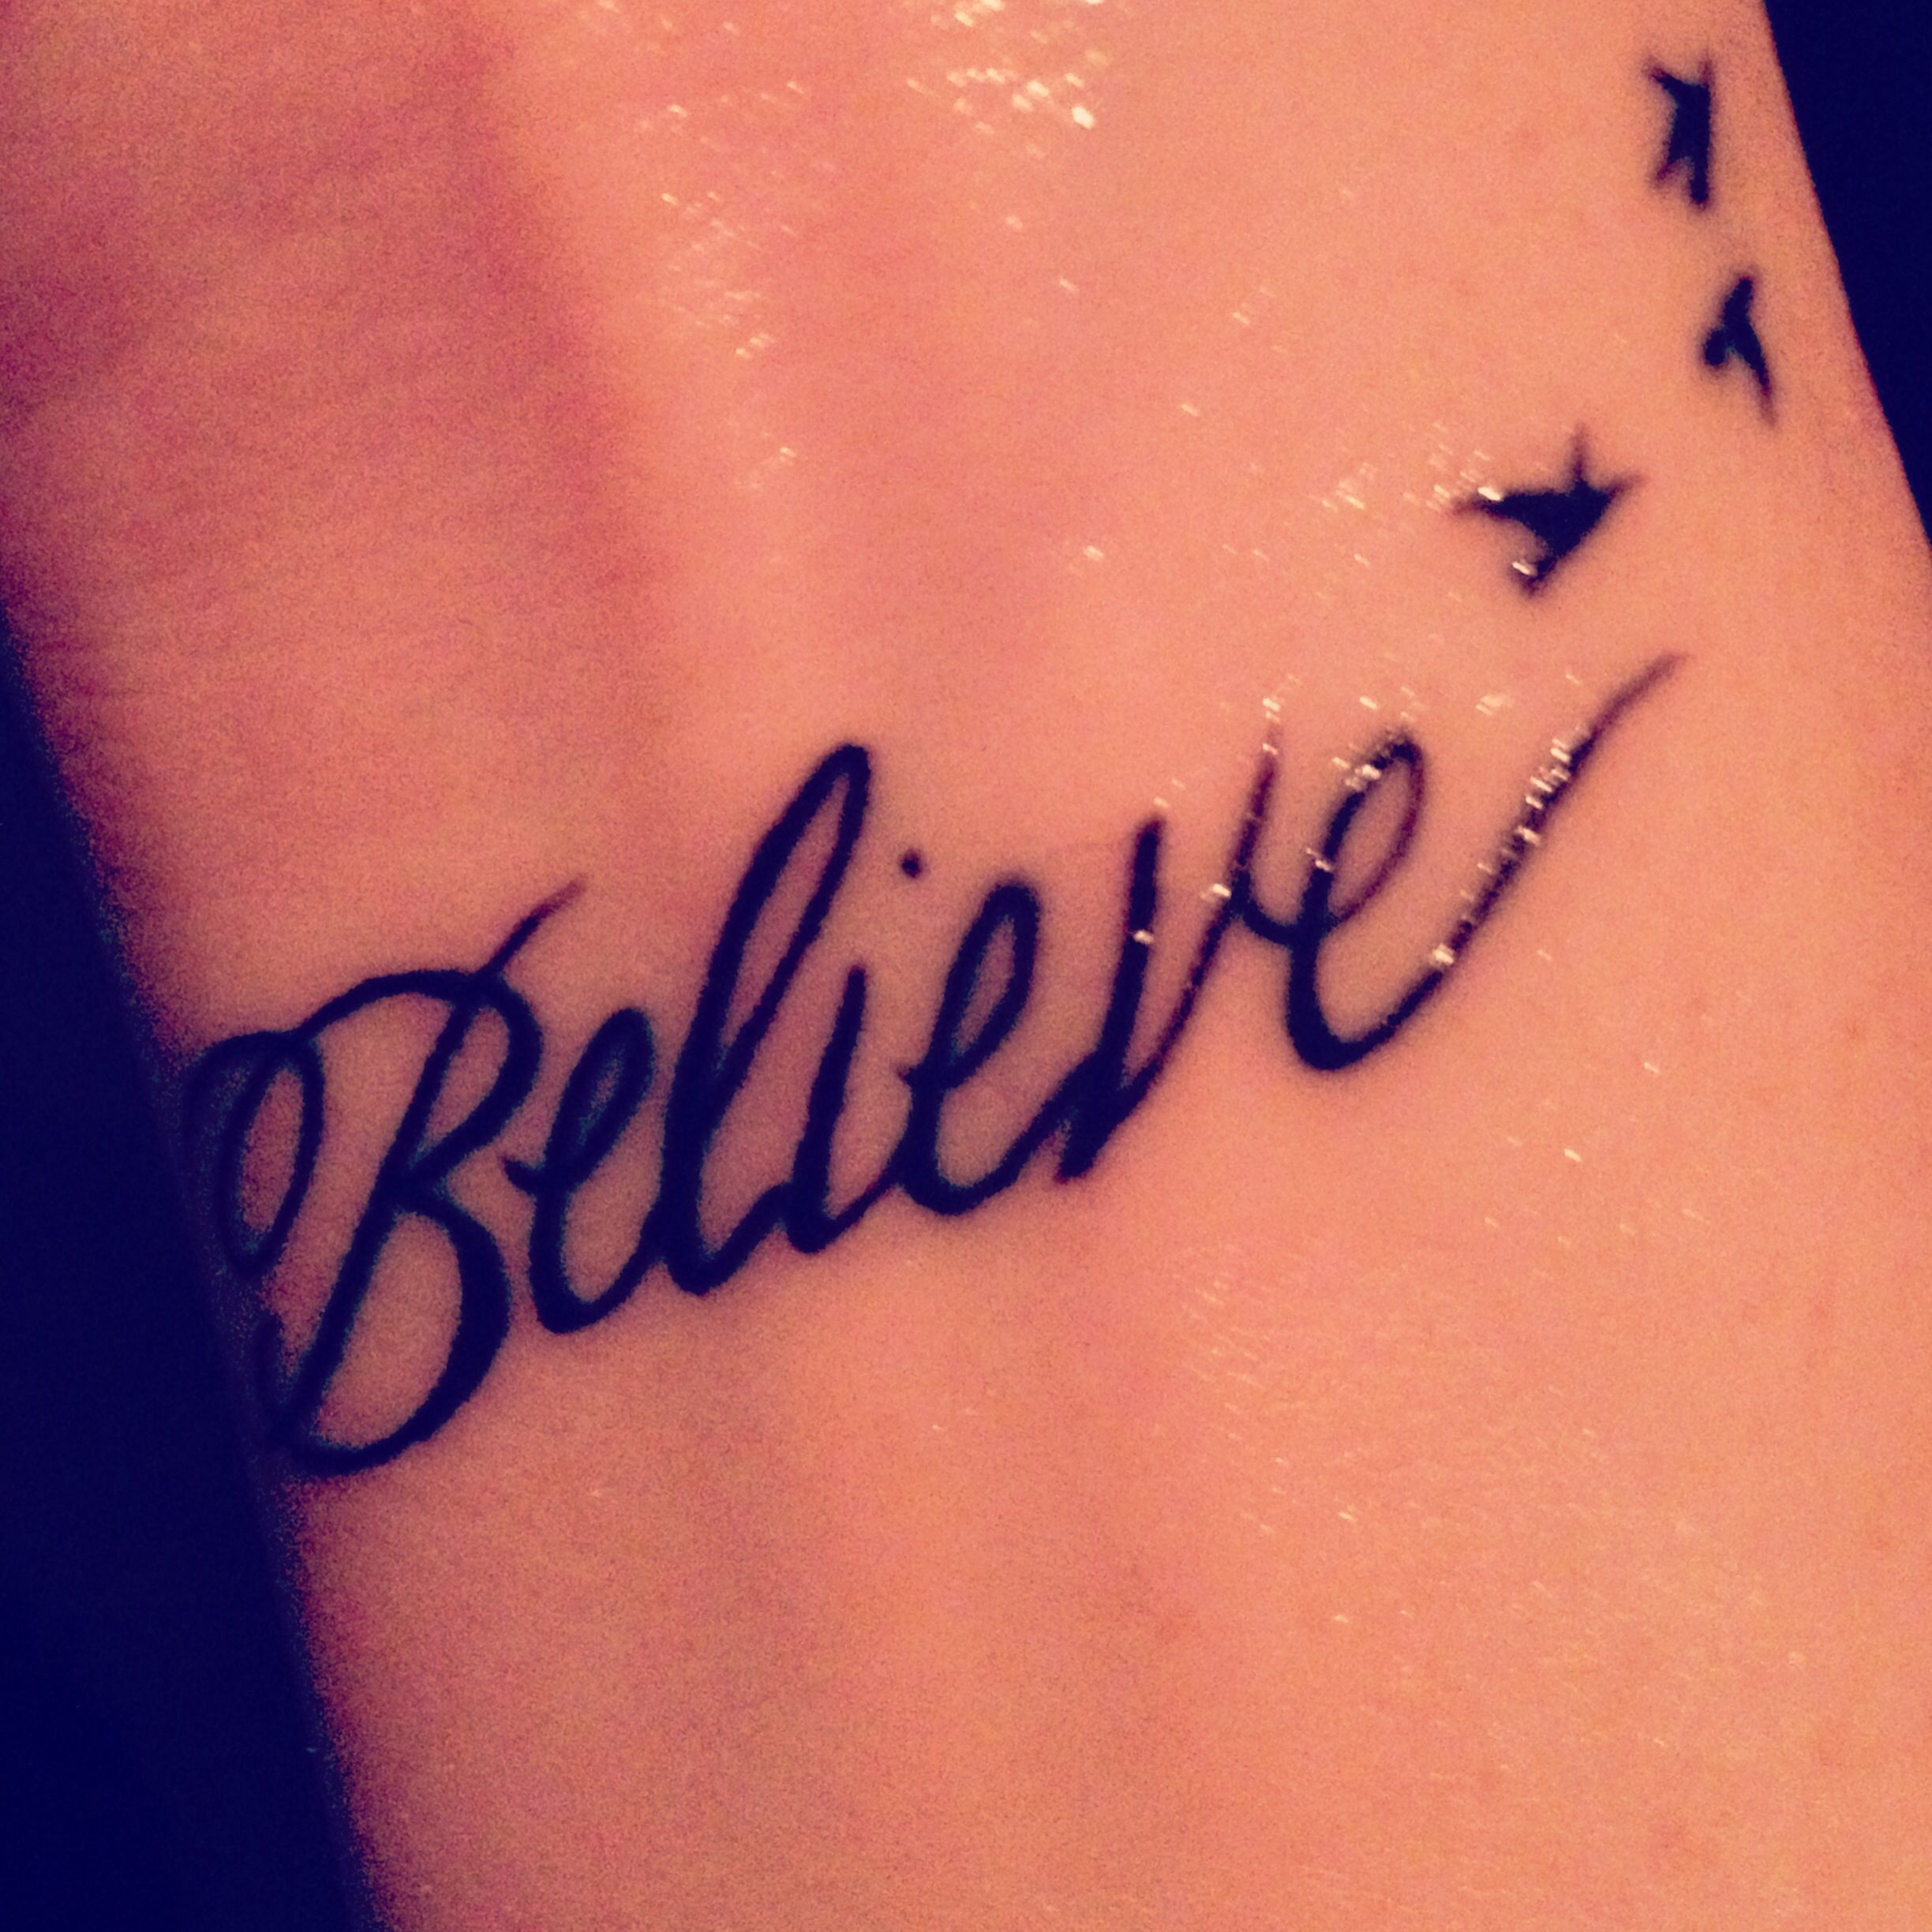 believe would be with small tinker bell or